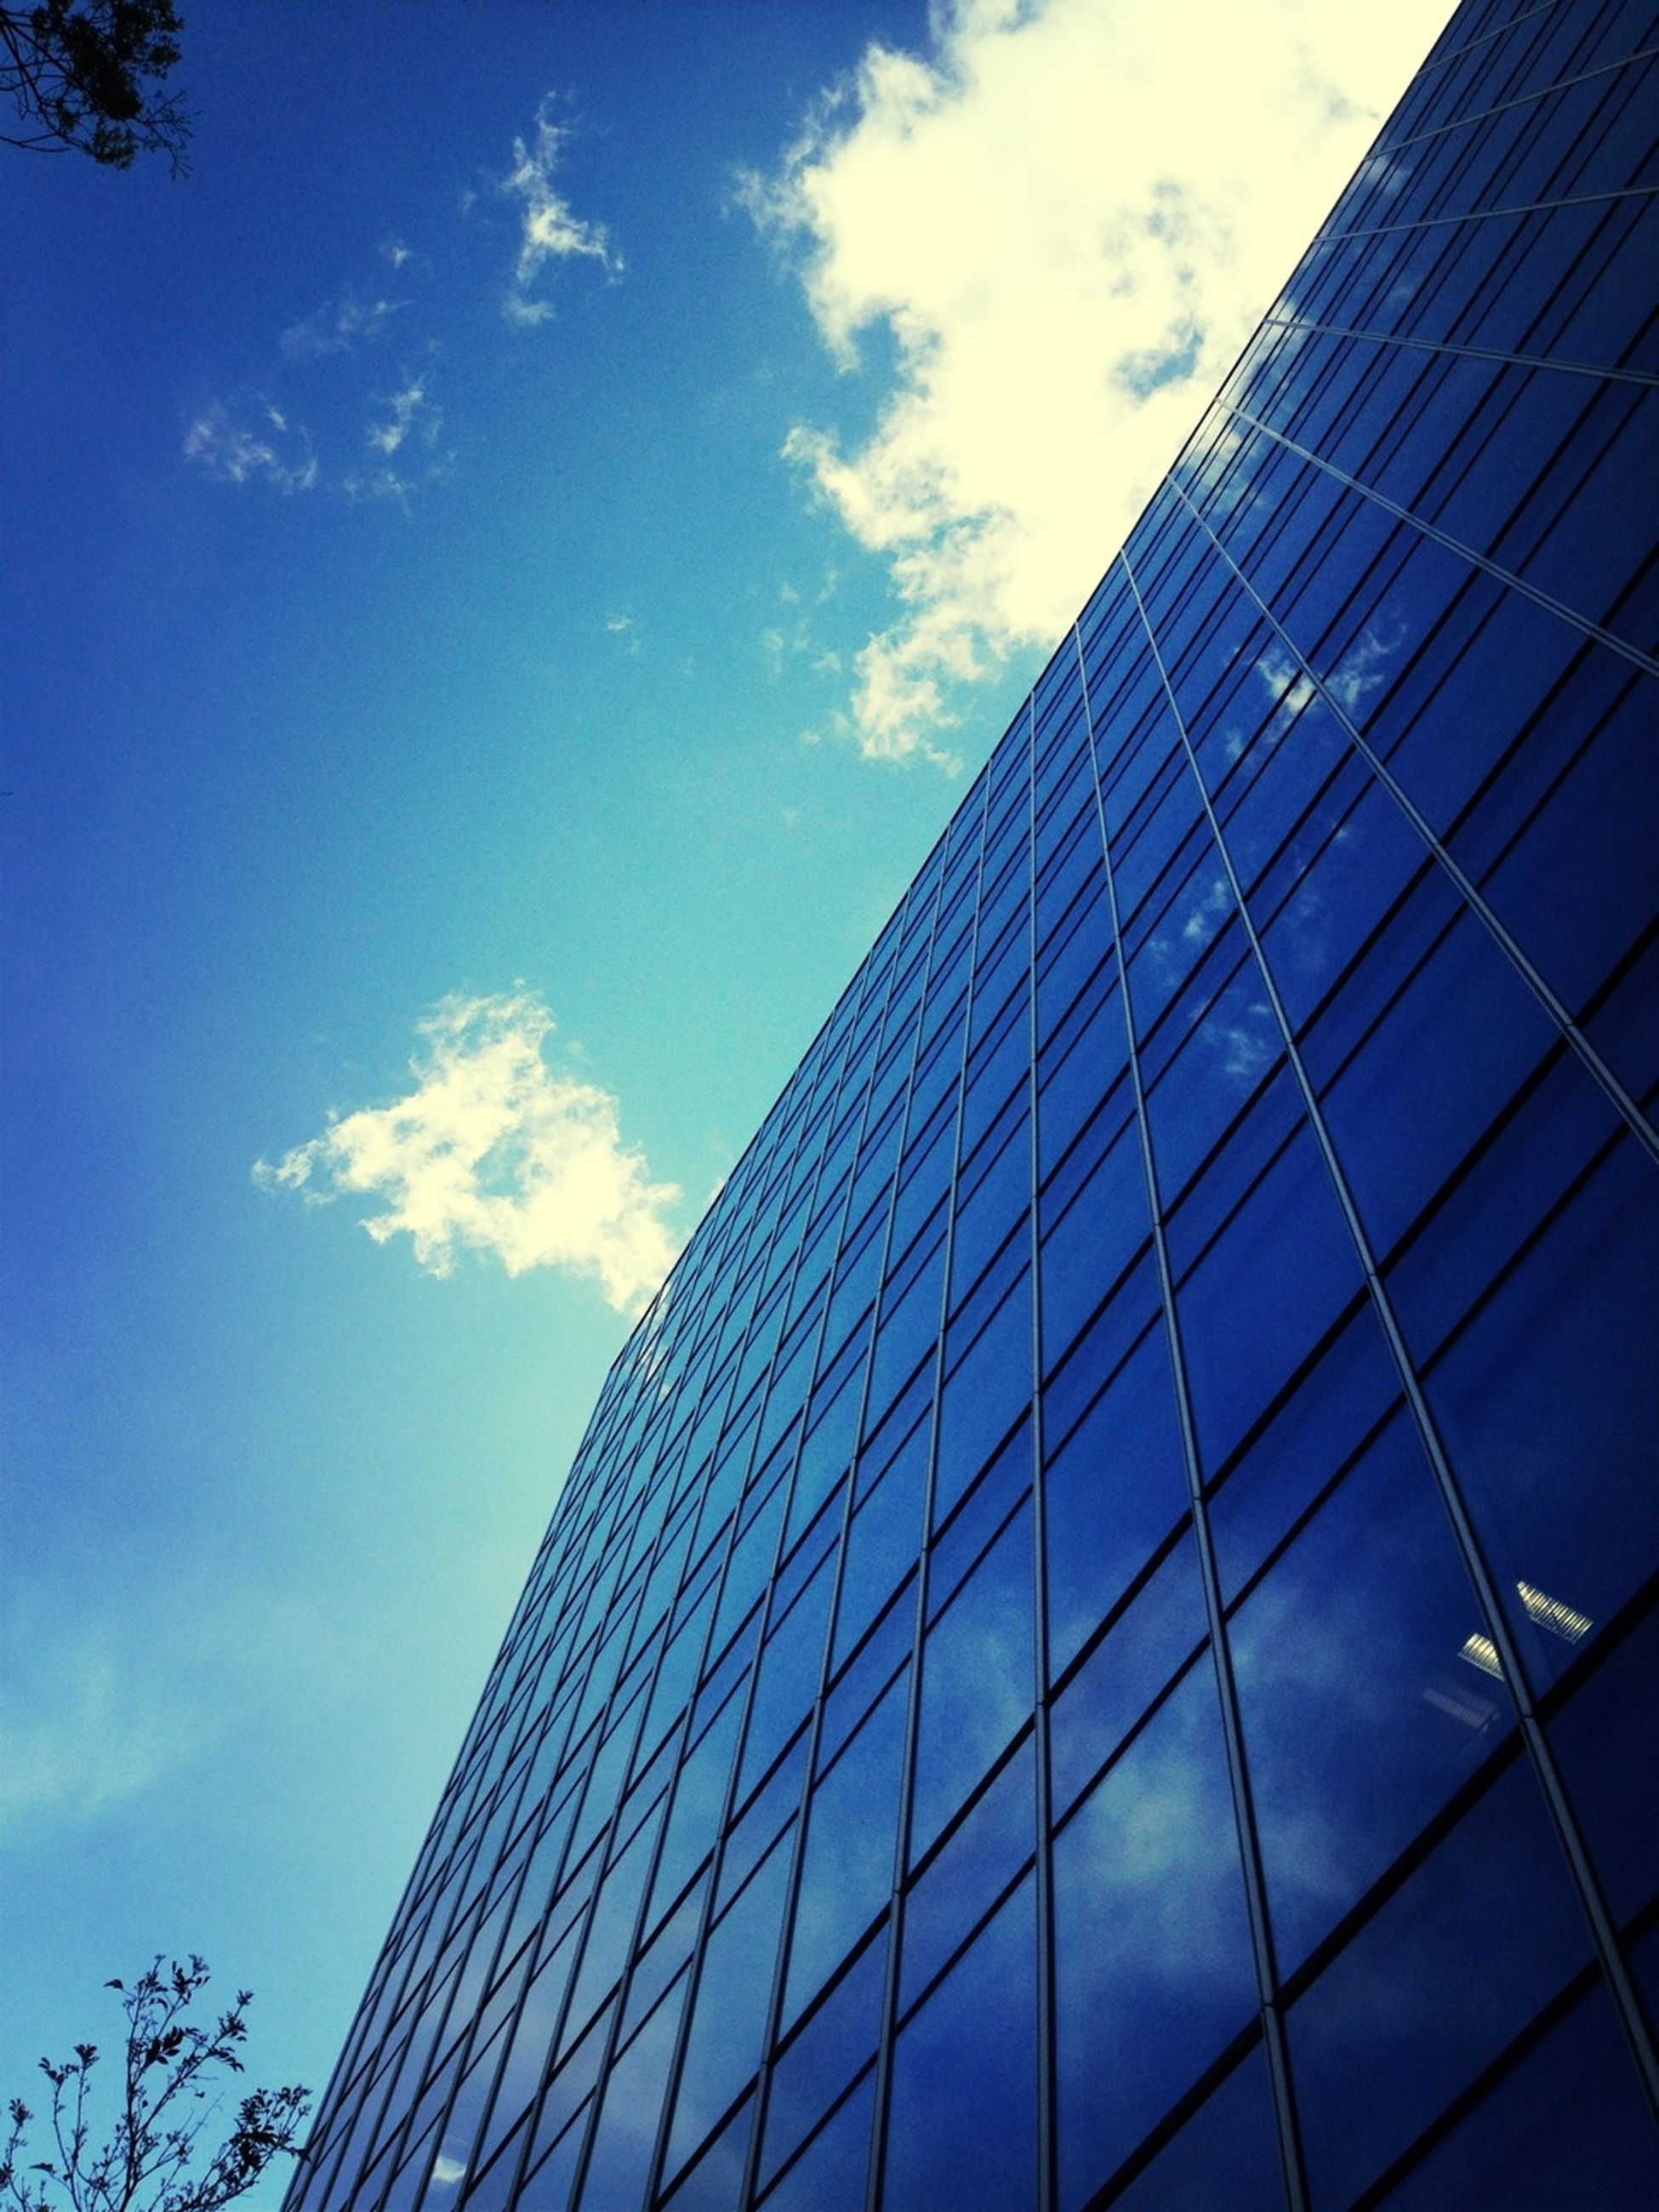 architecture, building exterior, built structure, low angle view, modern, office building, reflection, sky, skyscraper, glass - material, city, tall - high, blue, tower, building, cloud - sky, cloud, day, glass, window